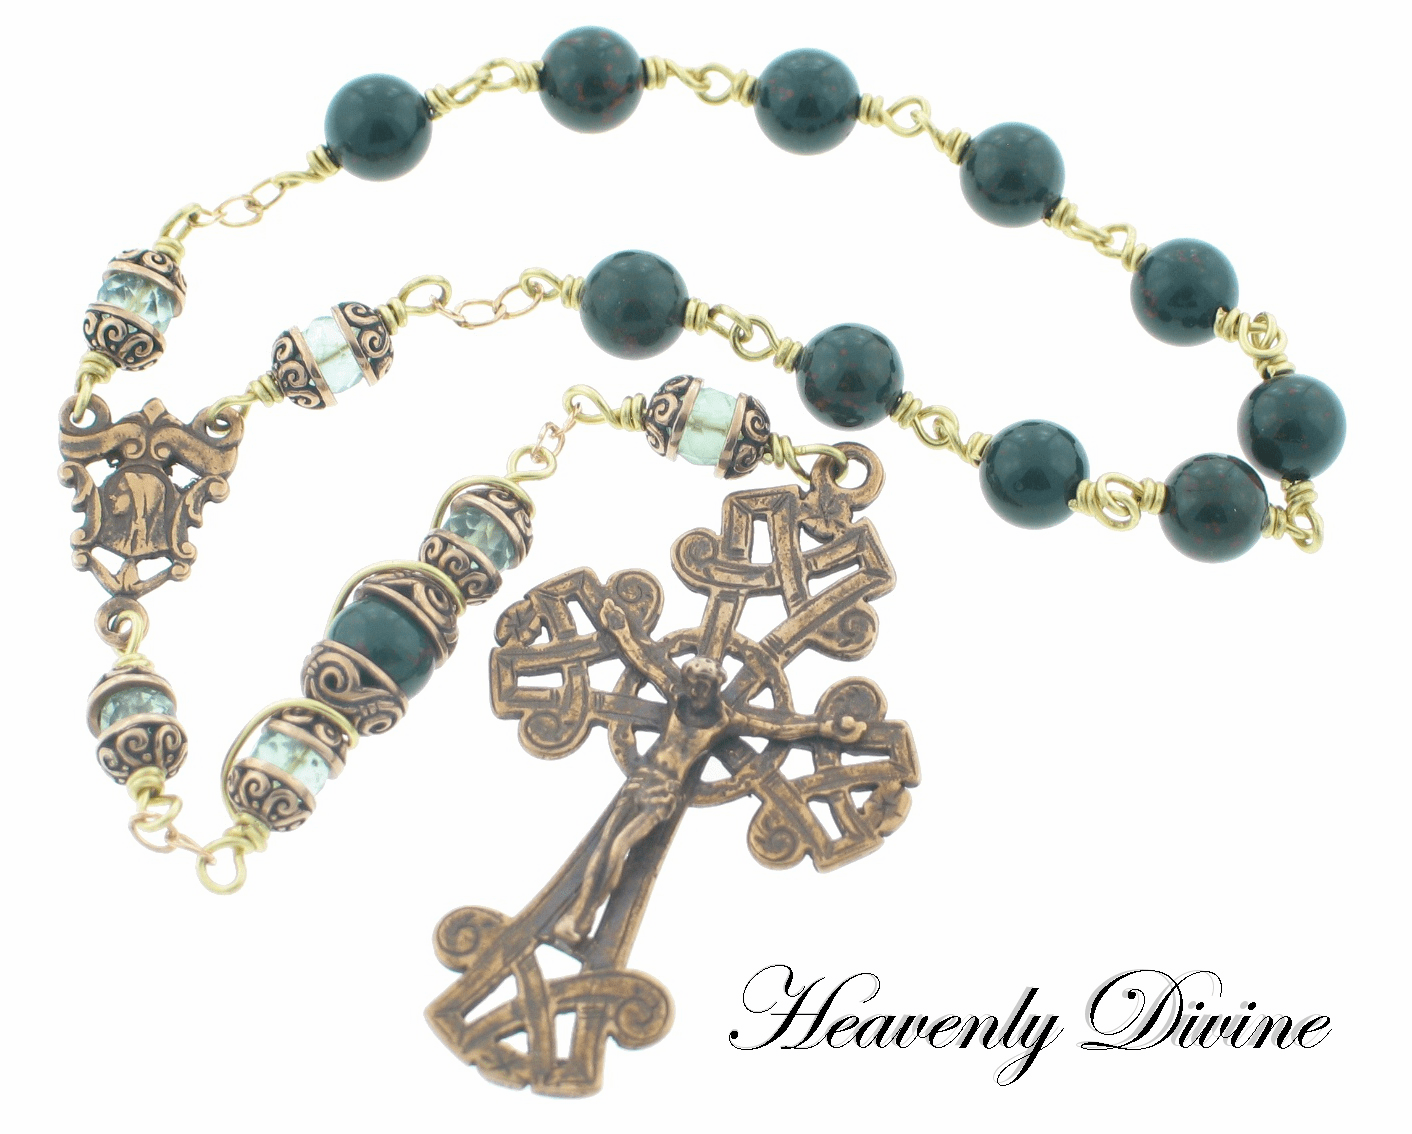 Irish Prayer Rosaries and Chaplets